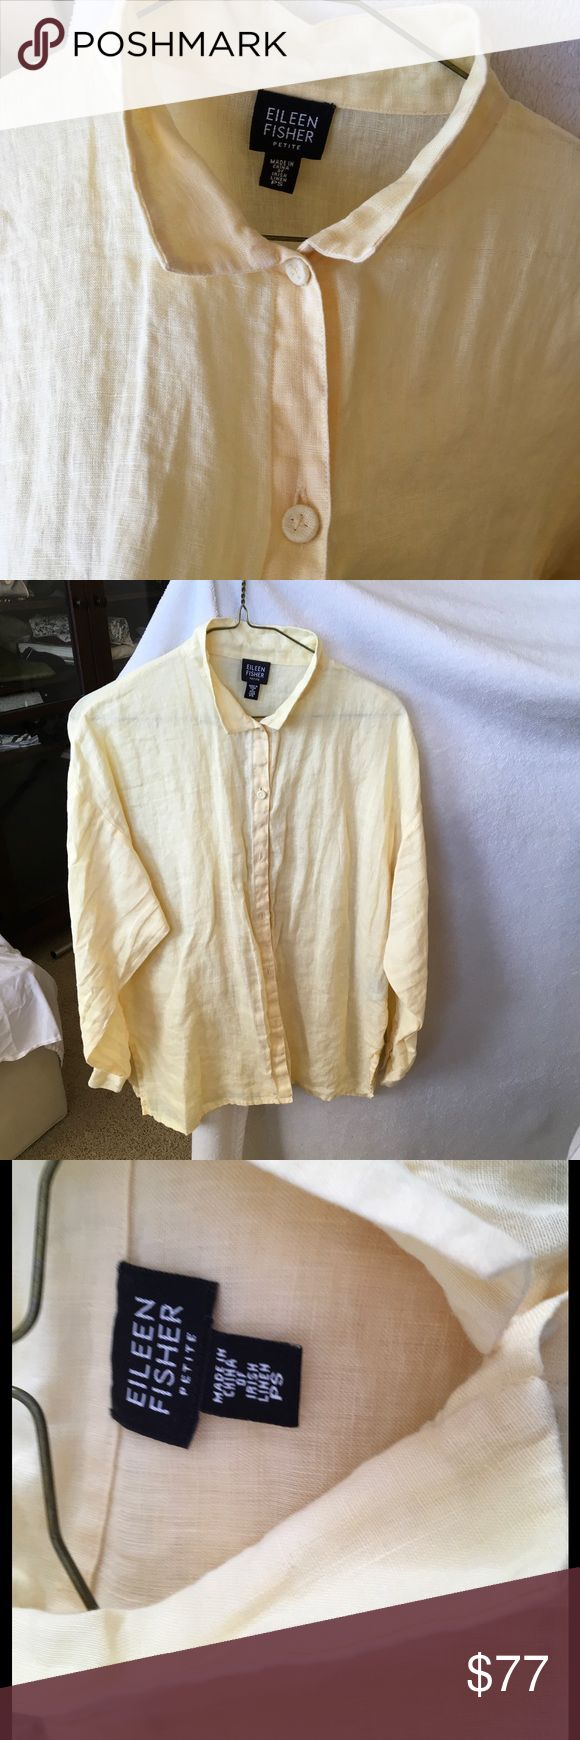 Linen Shirt in crisp yellow, fits like Medium Excellent condition, Eileen Fisher linen shirt. Sizes run big. This fits a typical medium or 8/10. Eileen Fisher Tops Button Down Shirts